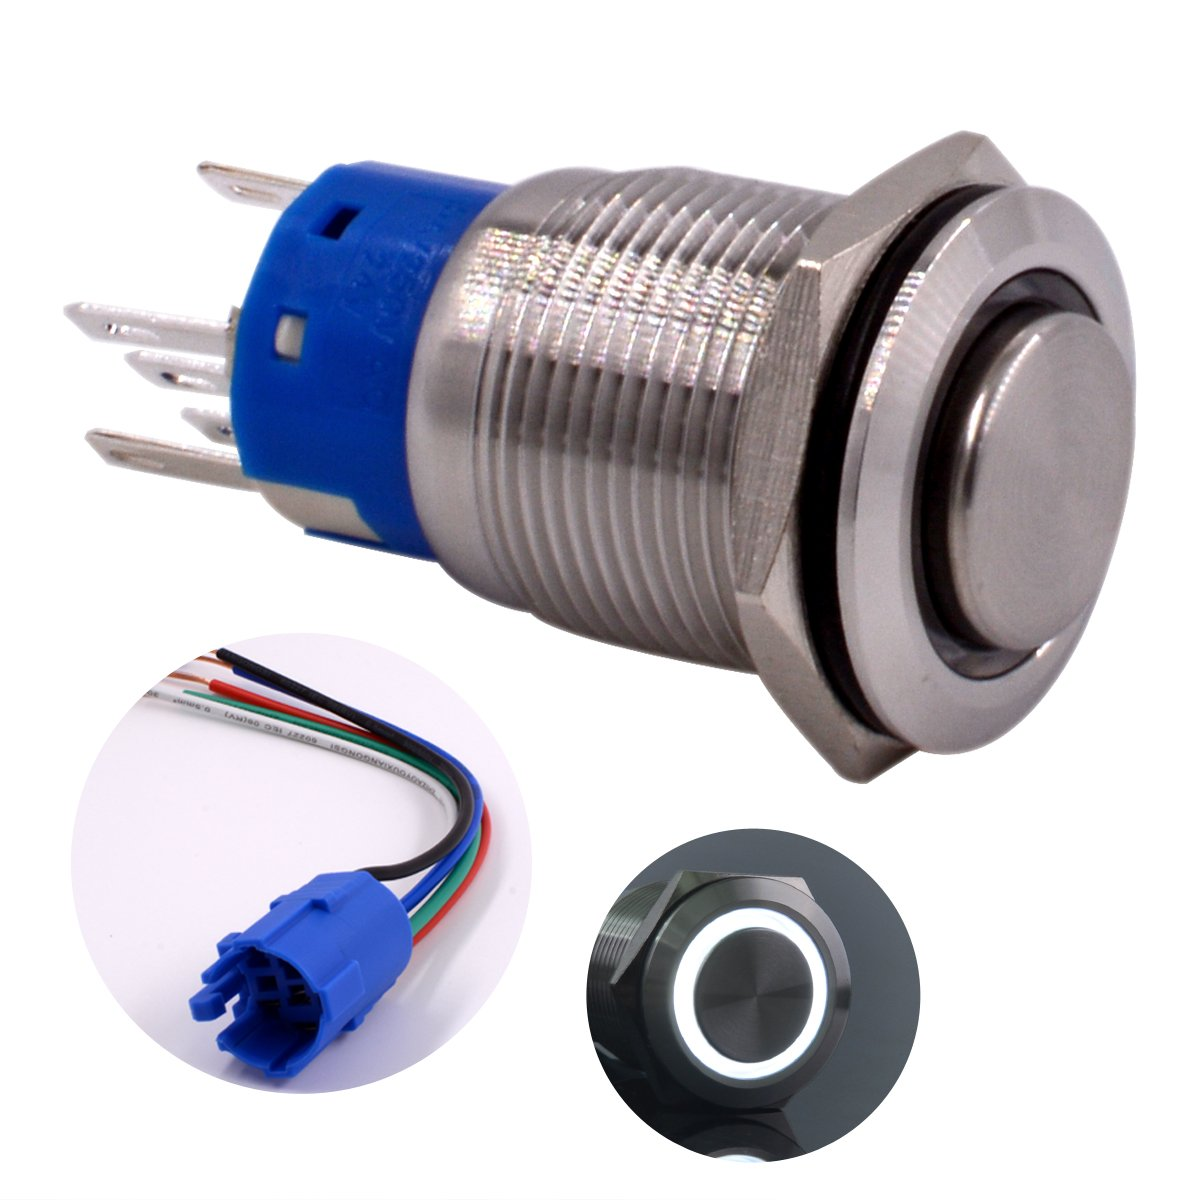 URTONE UR198 Include Socket 1NO1NC Stainless Steel Shell with 24V Blue LED Ring Suitable for 19mm 3//4 Mounting Hole Momentary Push Button Switch